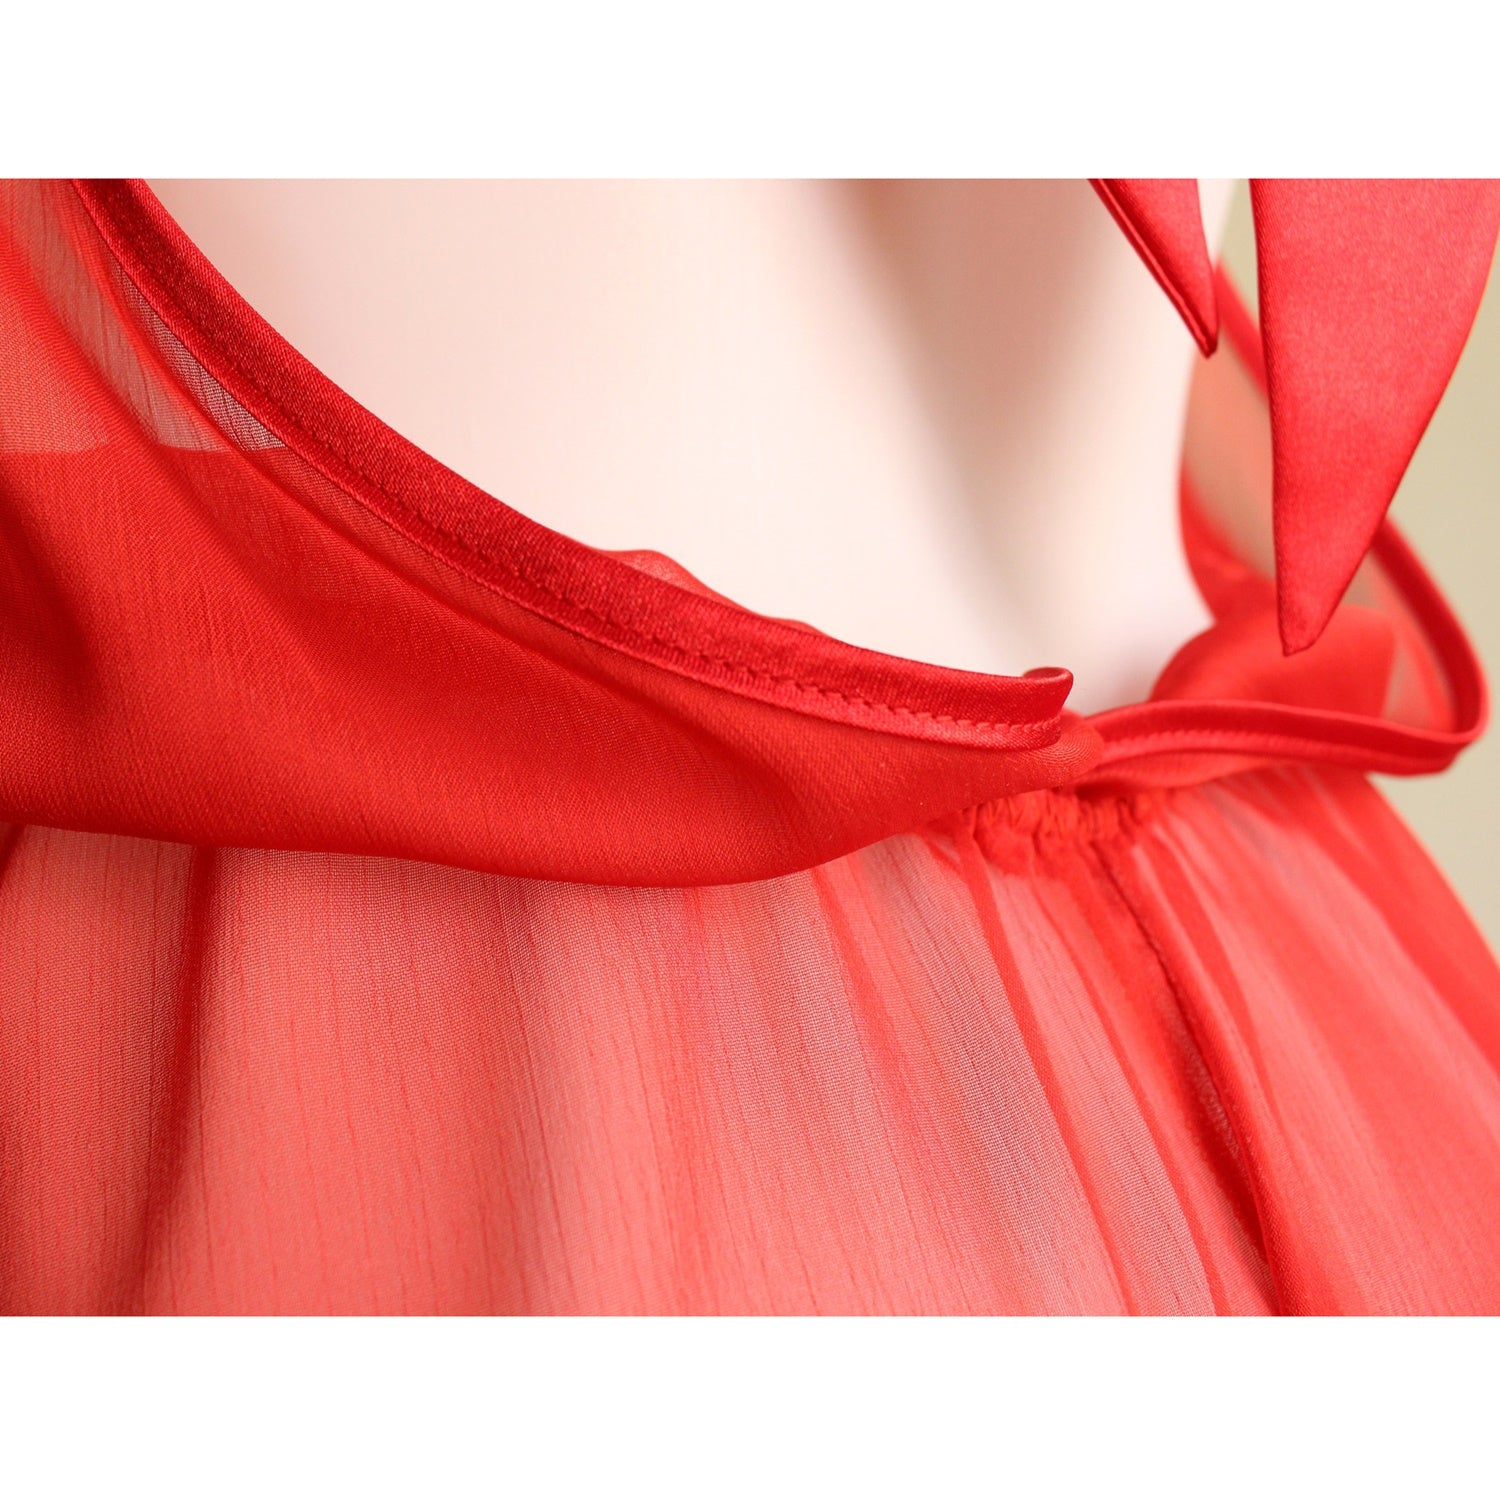 Sheer lingerie Backless Red See through Erotic Lingerie sexy Teddy Play Suit